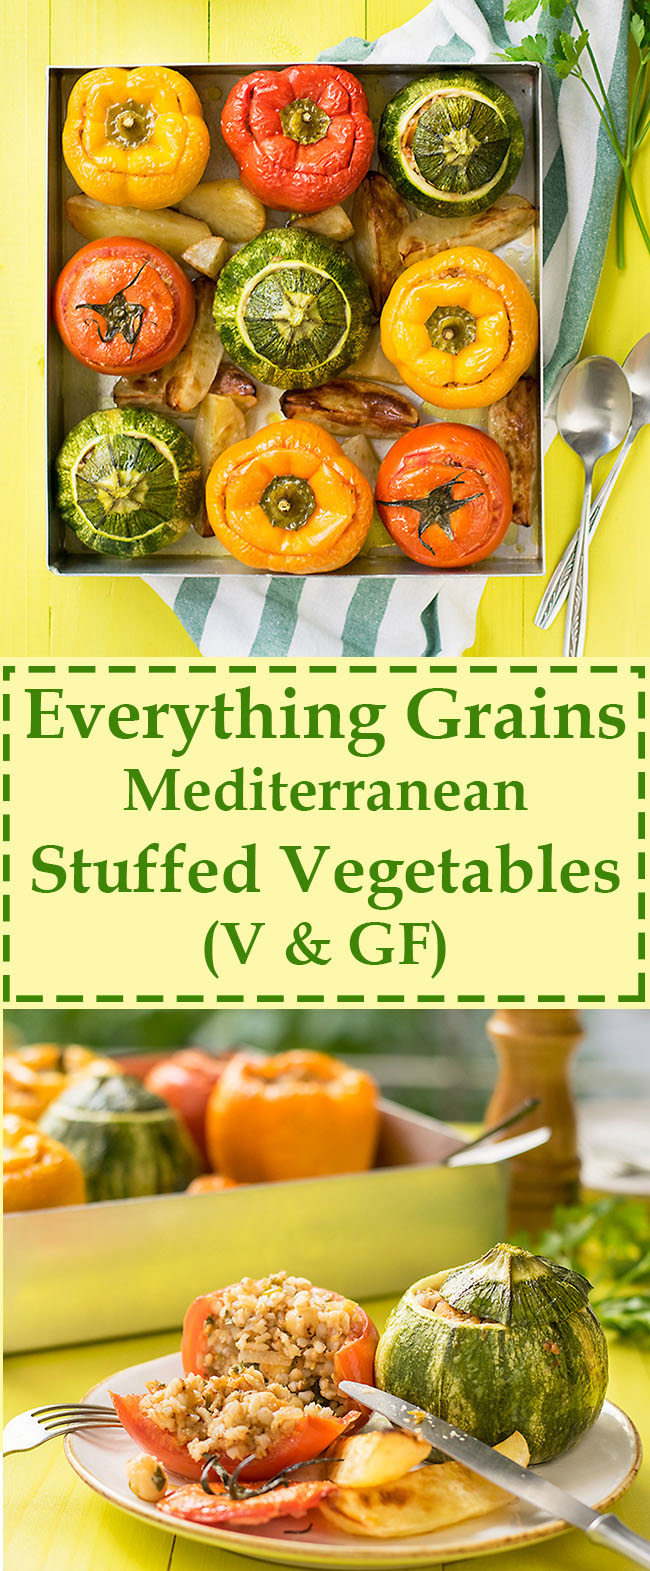 Everything grains Mediterranean stuffed vegetables 7